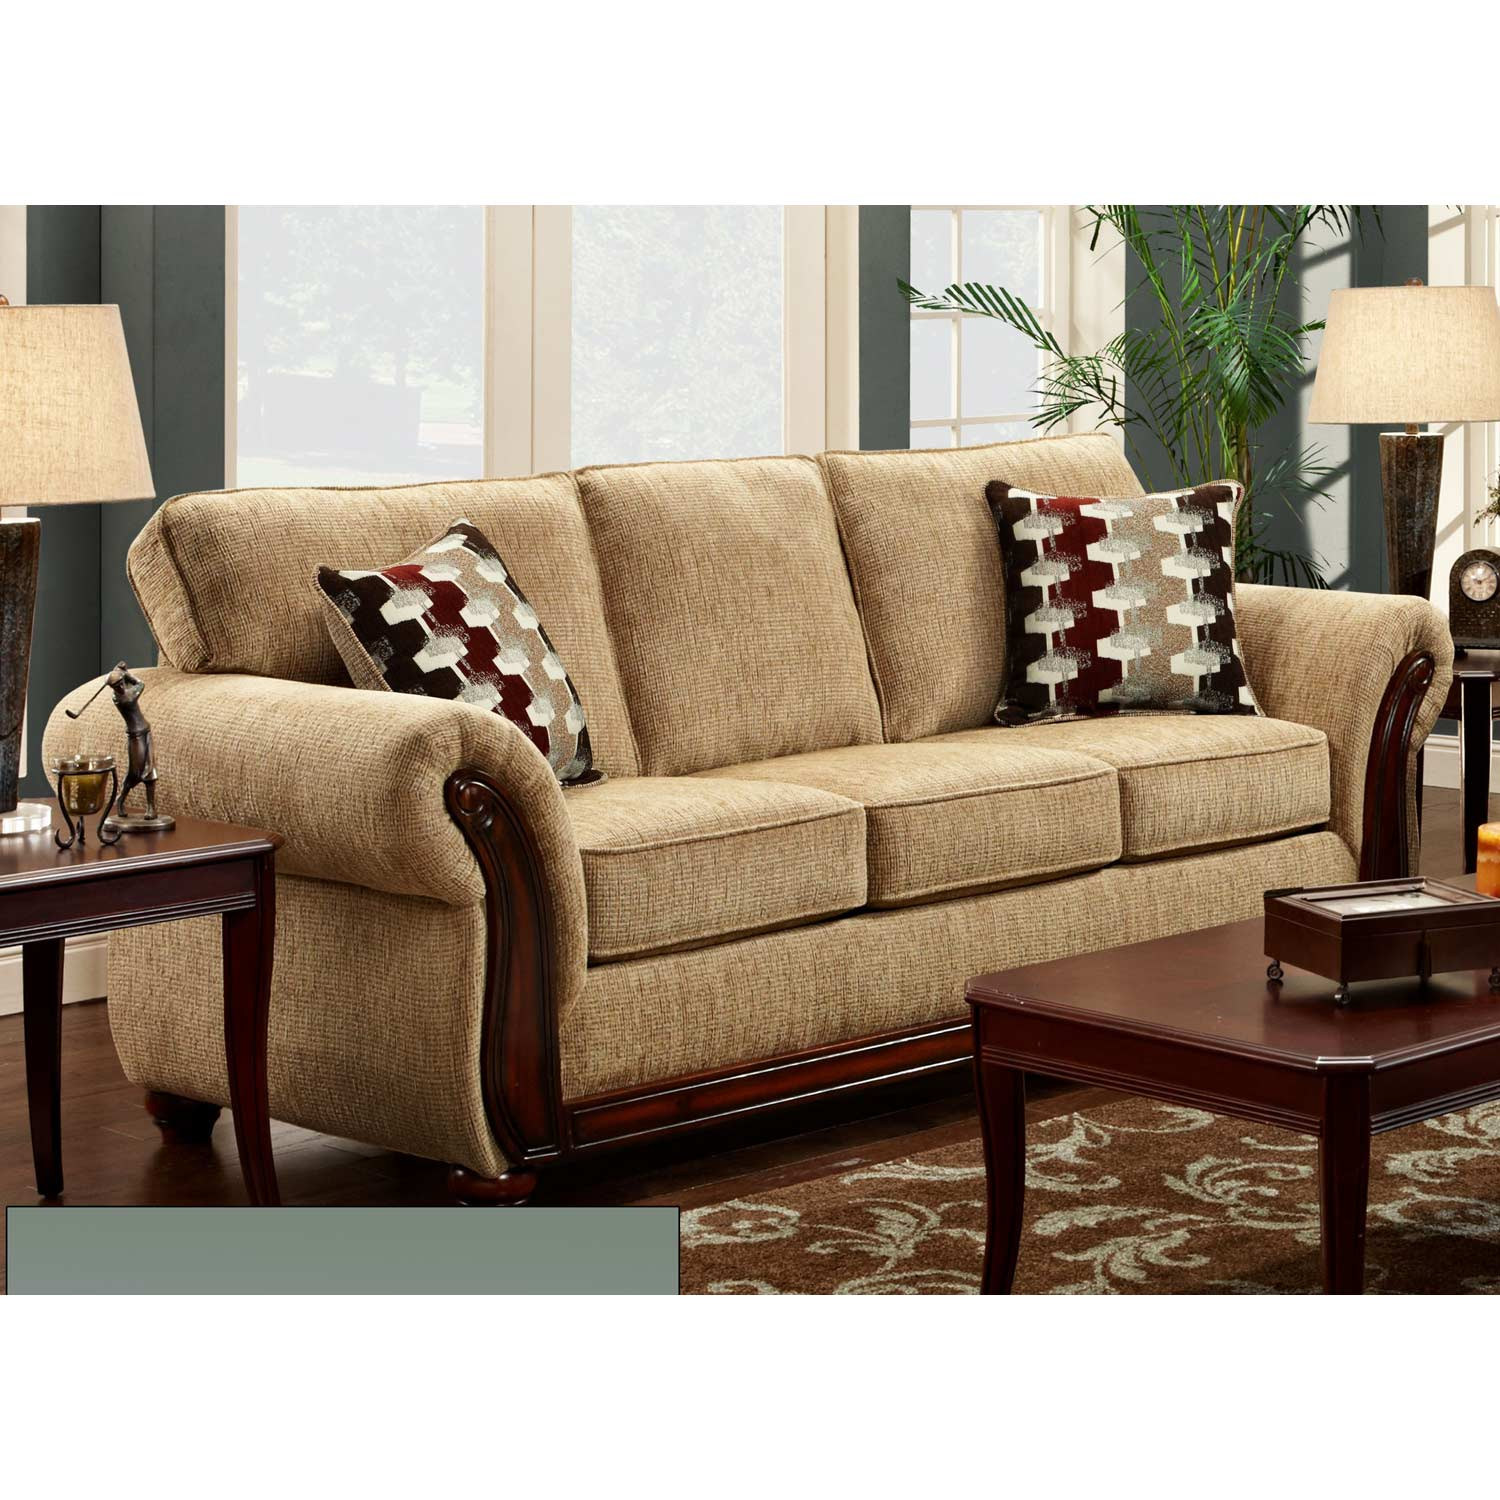 Courtney Rolled Arm Sofa   Wood Trim, Radar Havana   CHF 478100 S ...